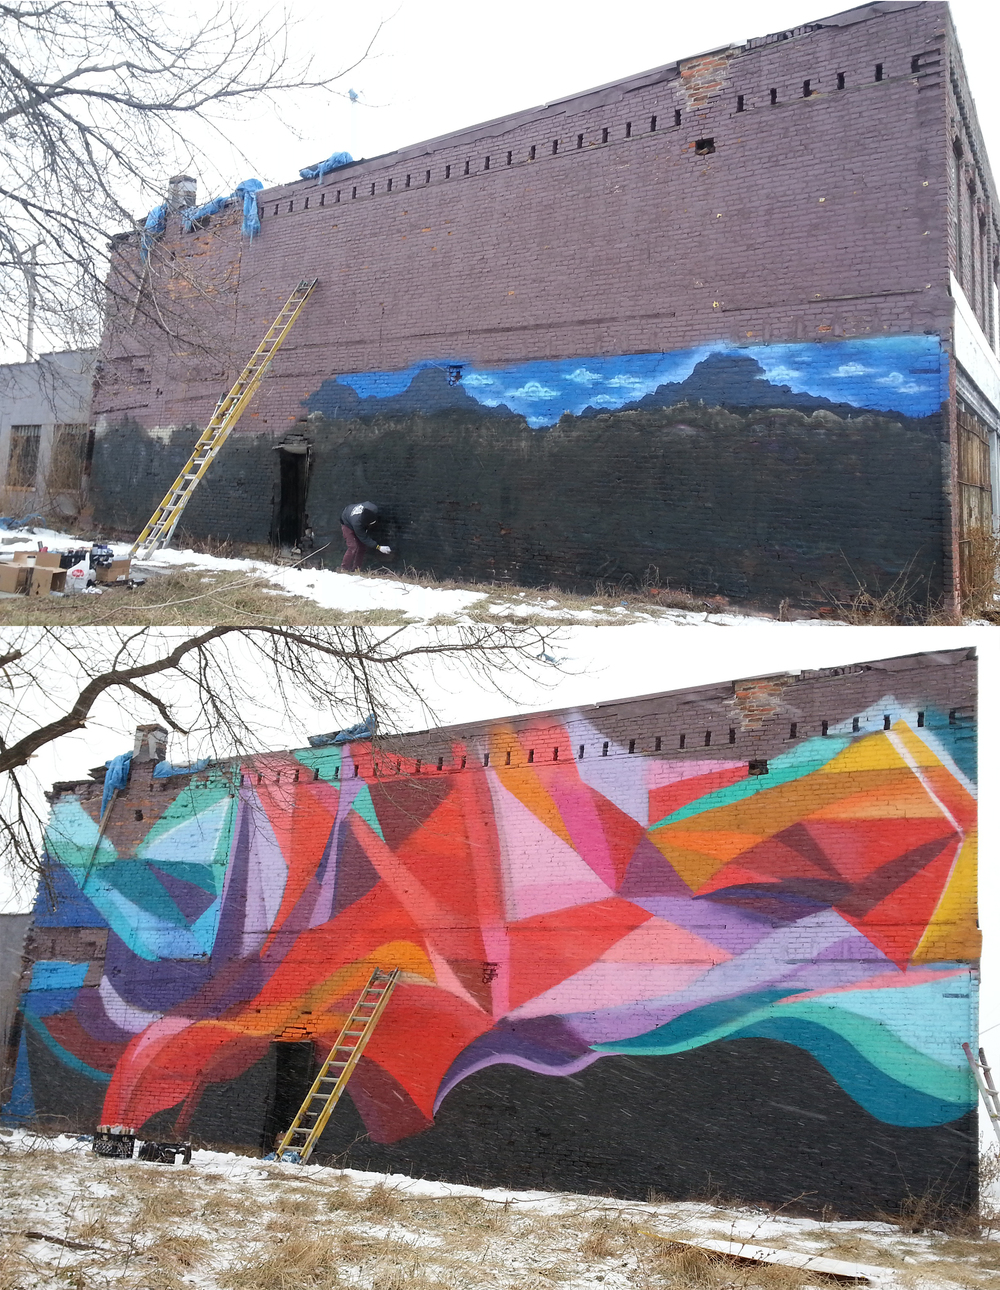 Philippe mastrocola for Detroit mural factory